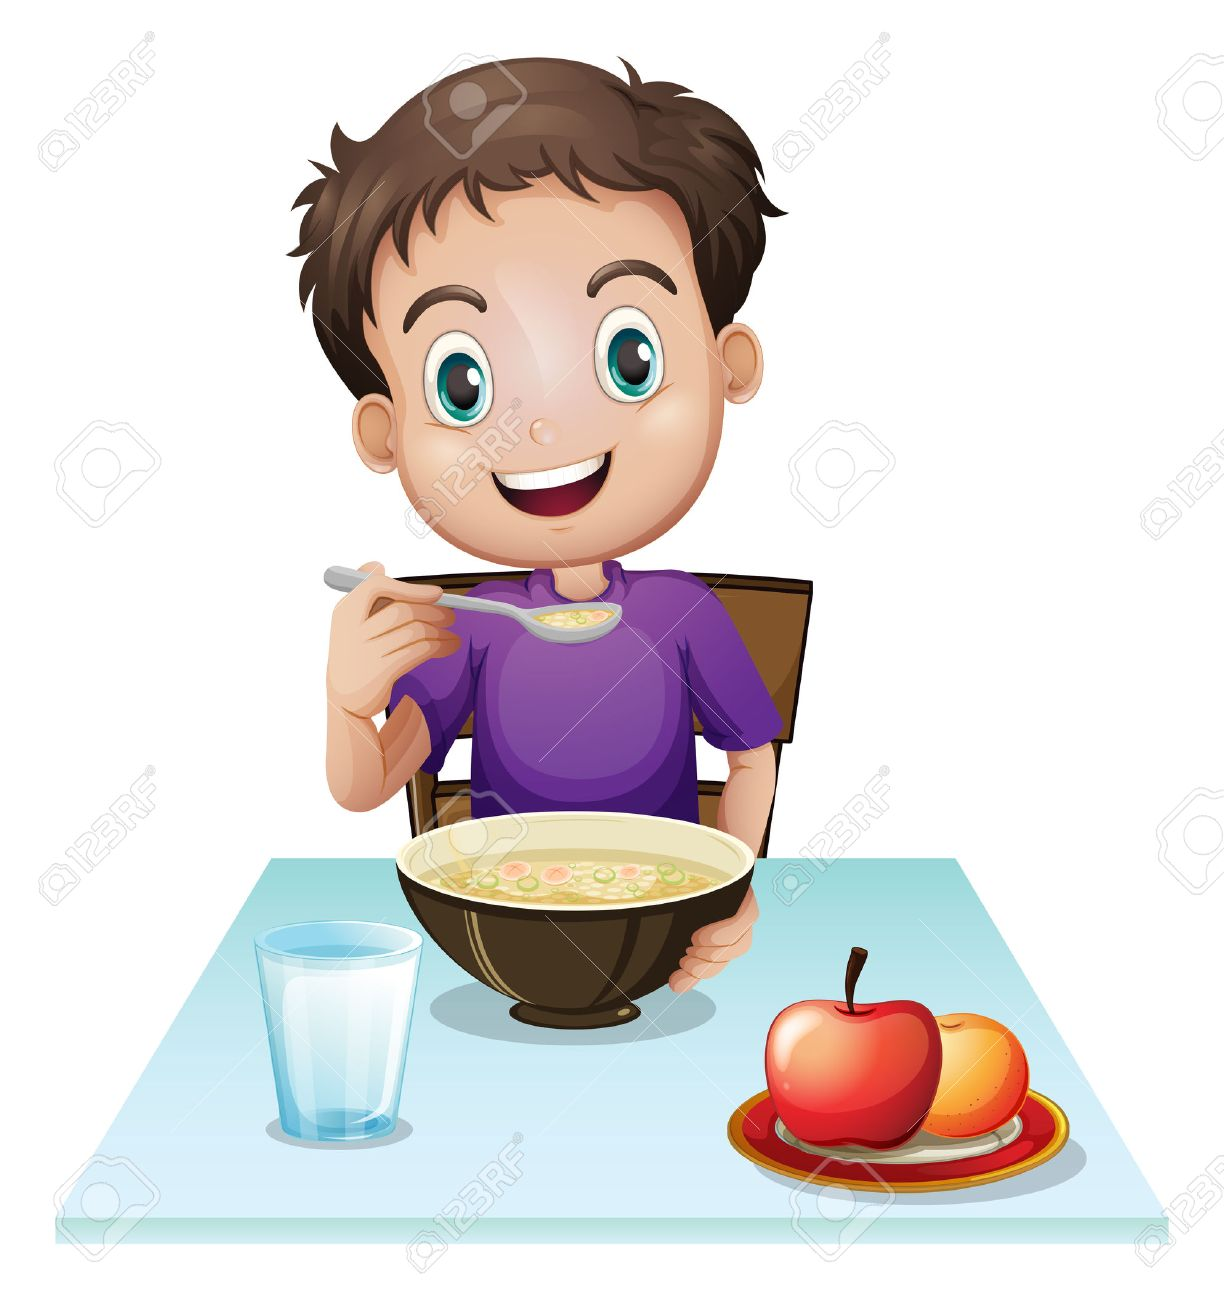 illustration of a boy eating his breakfast at the table on a